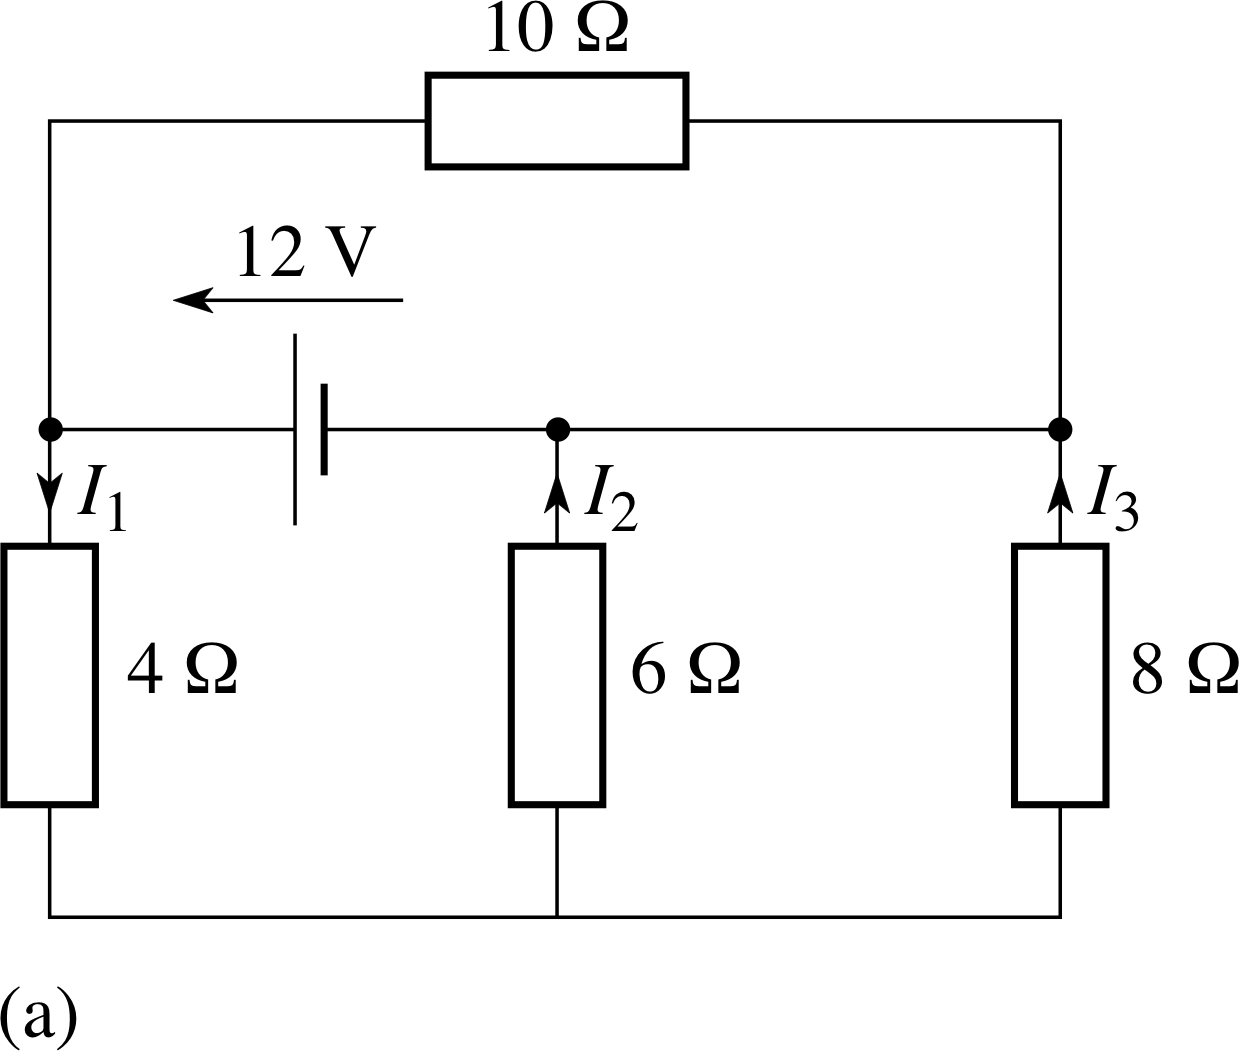 Pplato Flap Phys 41 Dc Circuits And Currents Current Generator Diagram Moreover R Circuit Figure